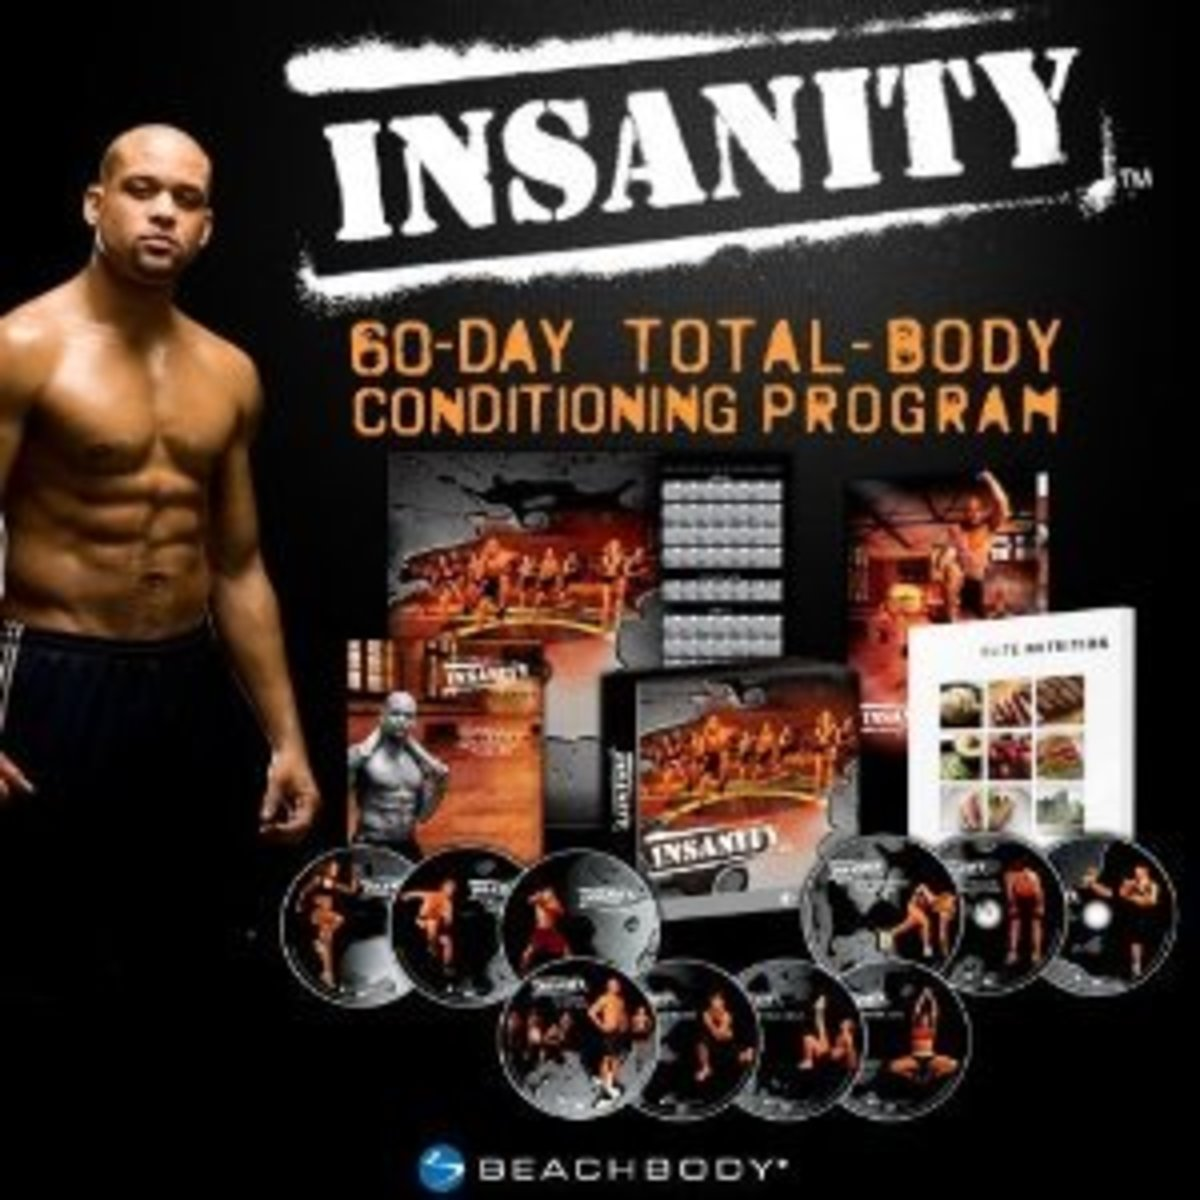 Before & After: Does the Insanity program work?